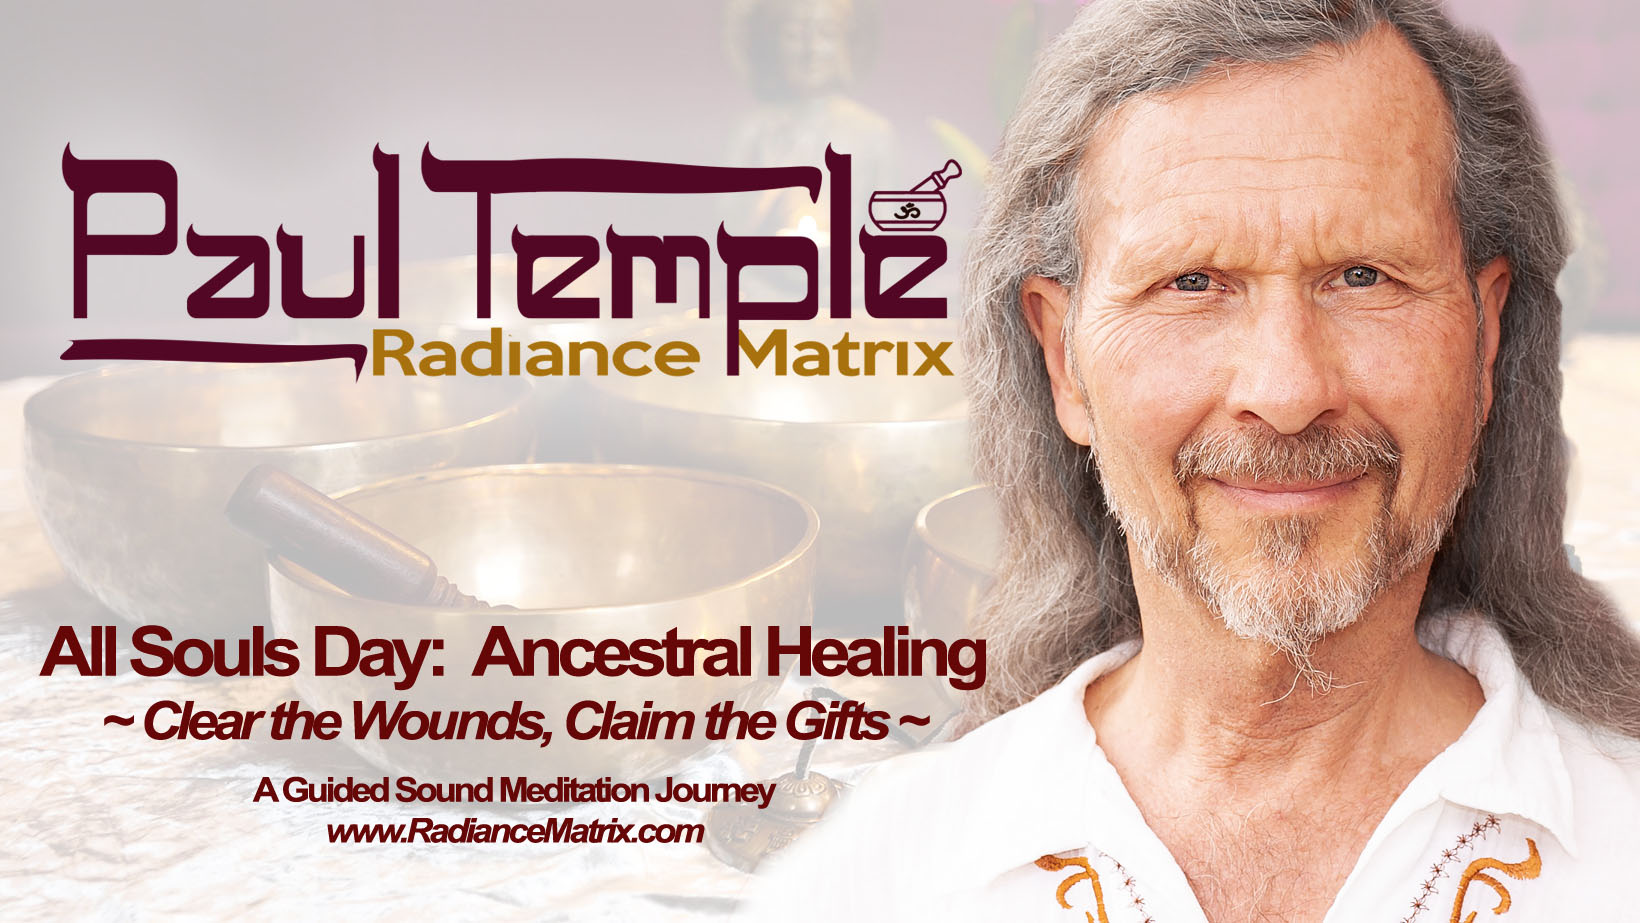 Tickets for All Souls Day: Ancestral Healing from BrightStar Live Events